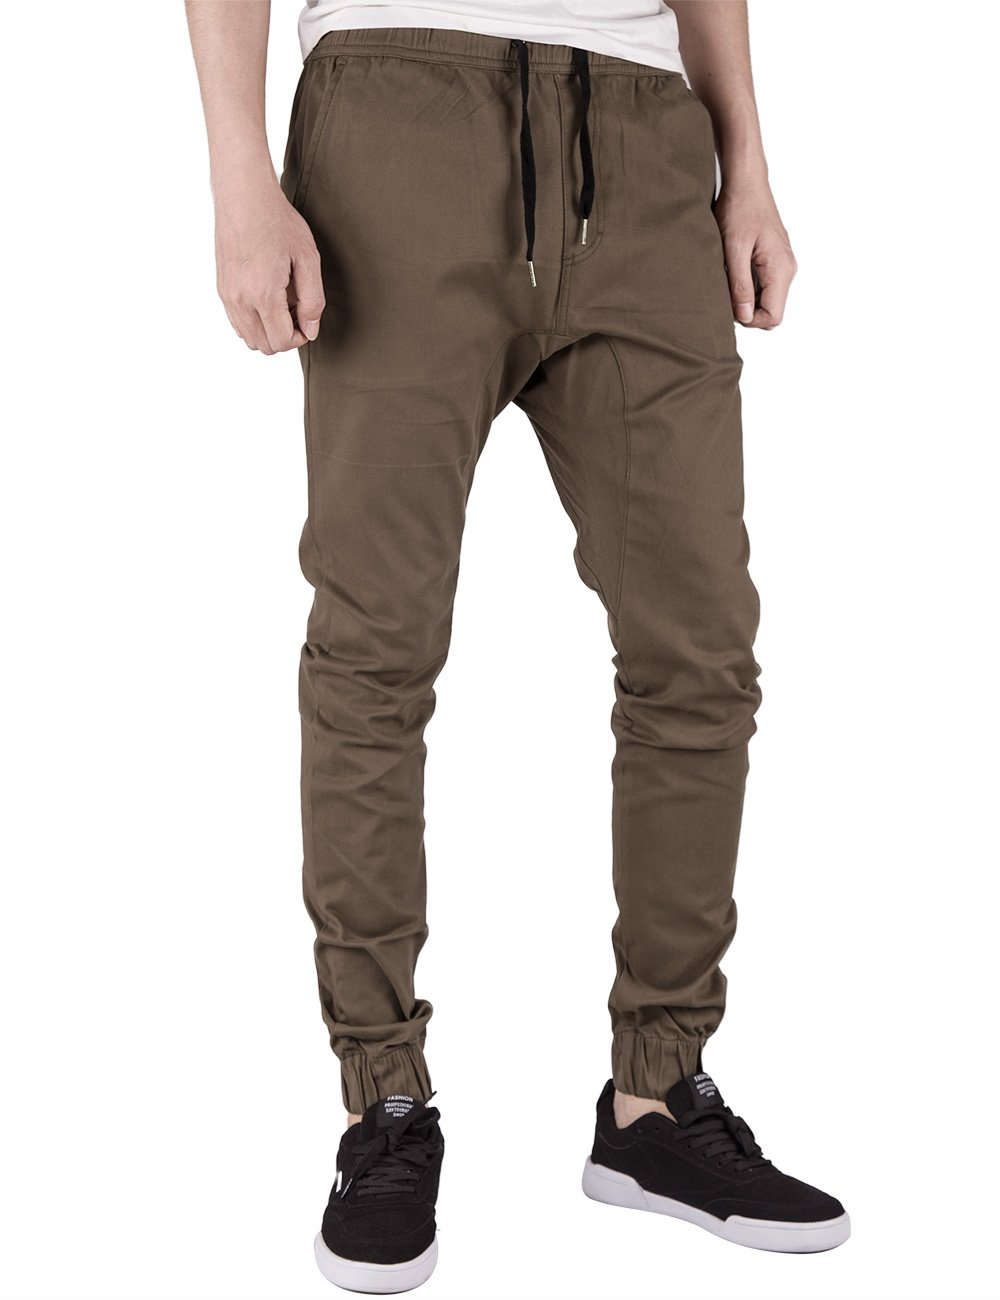 ITALY MORN Men's Chino Jogger Pants XL Coffee by ITALY MORN (Image #2)